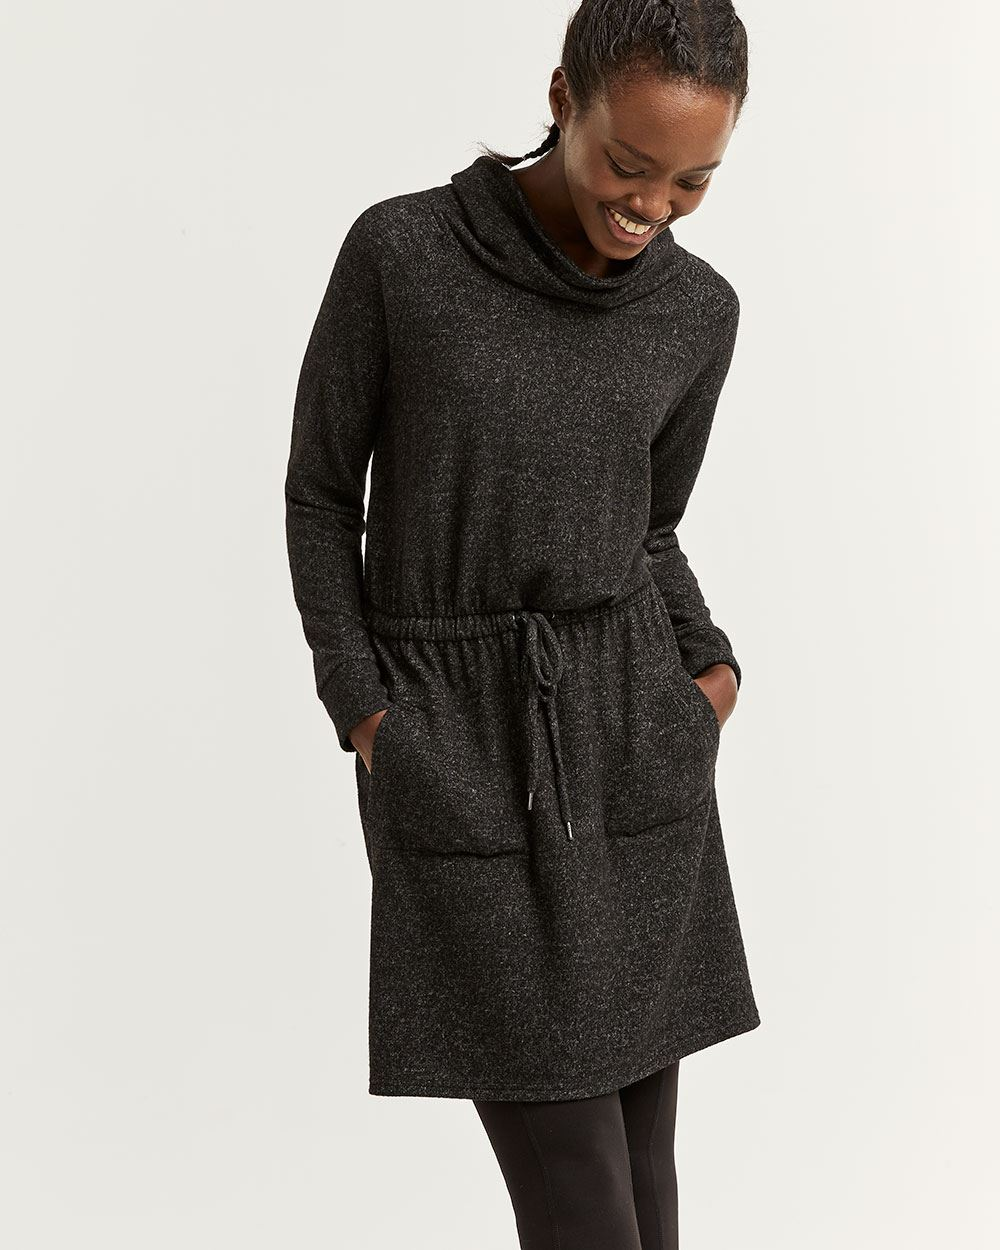 Hyba Brushed Knit Dress with Drawstring